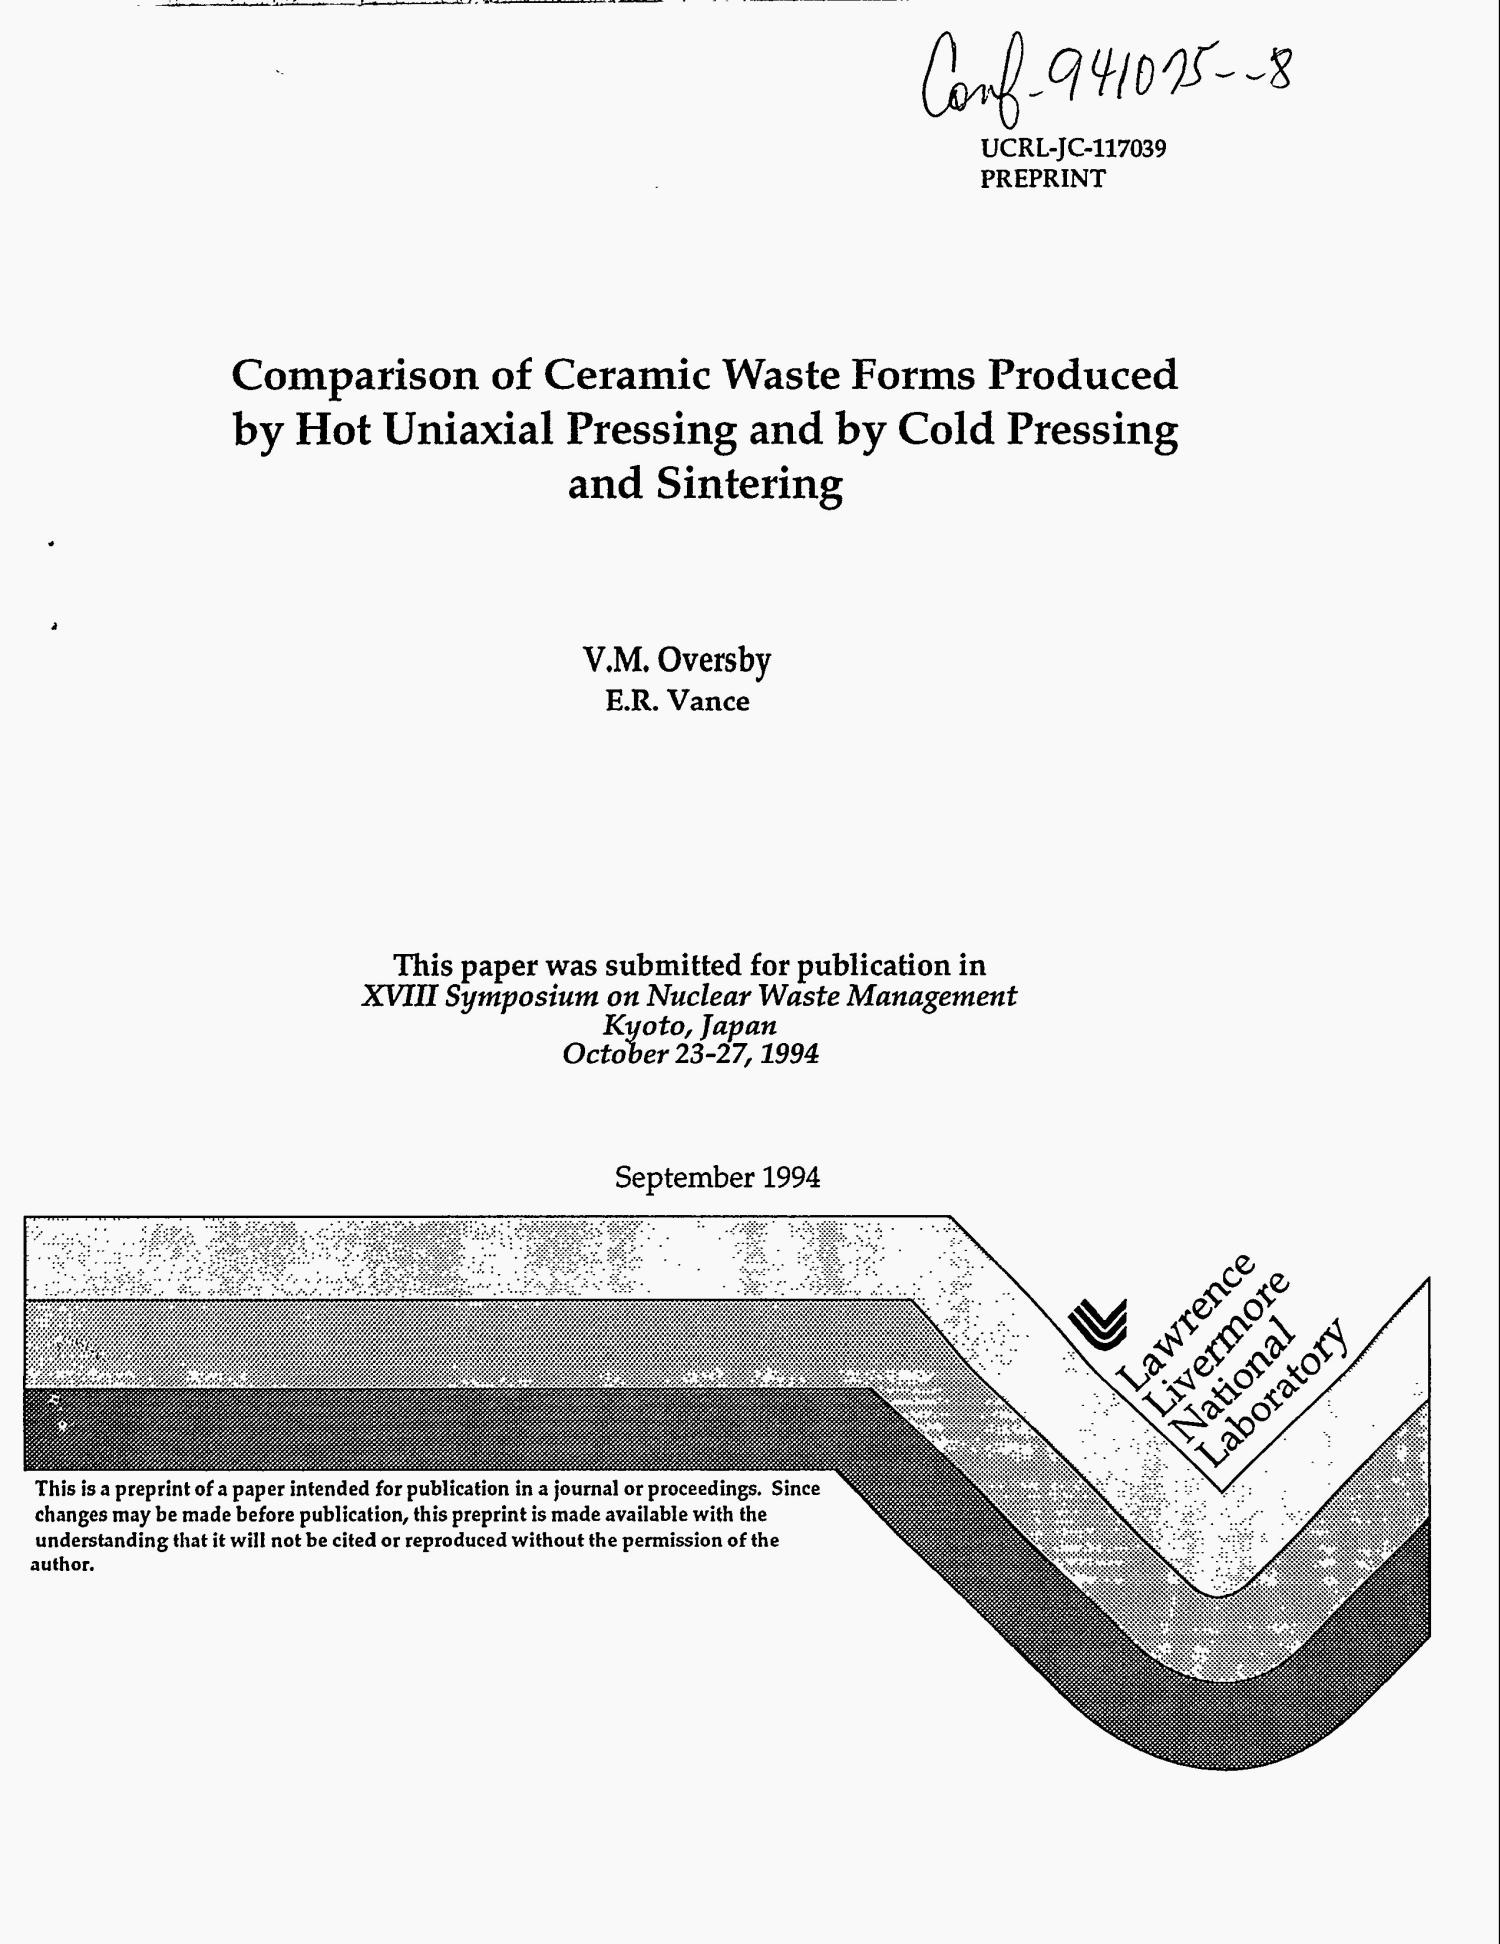 Comparison of ceramic waste forms produced by hot uniaxial pressing and by cold pressing and sintering                                                                                                      [Sequence #]: 1 of 11